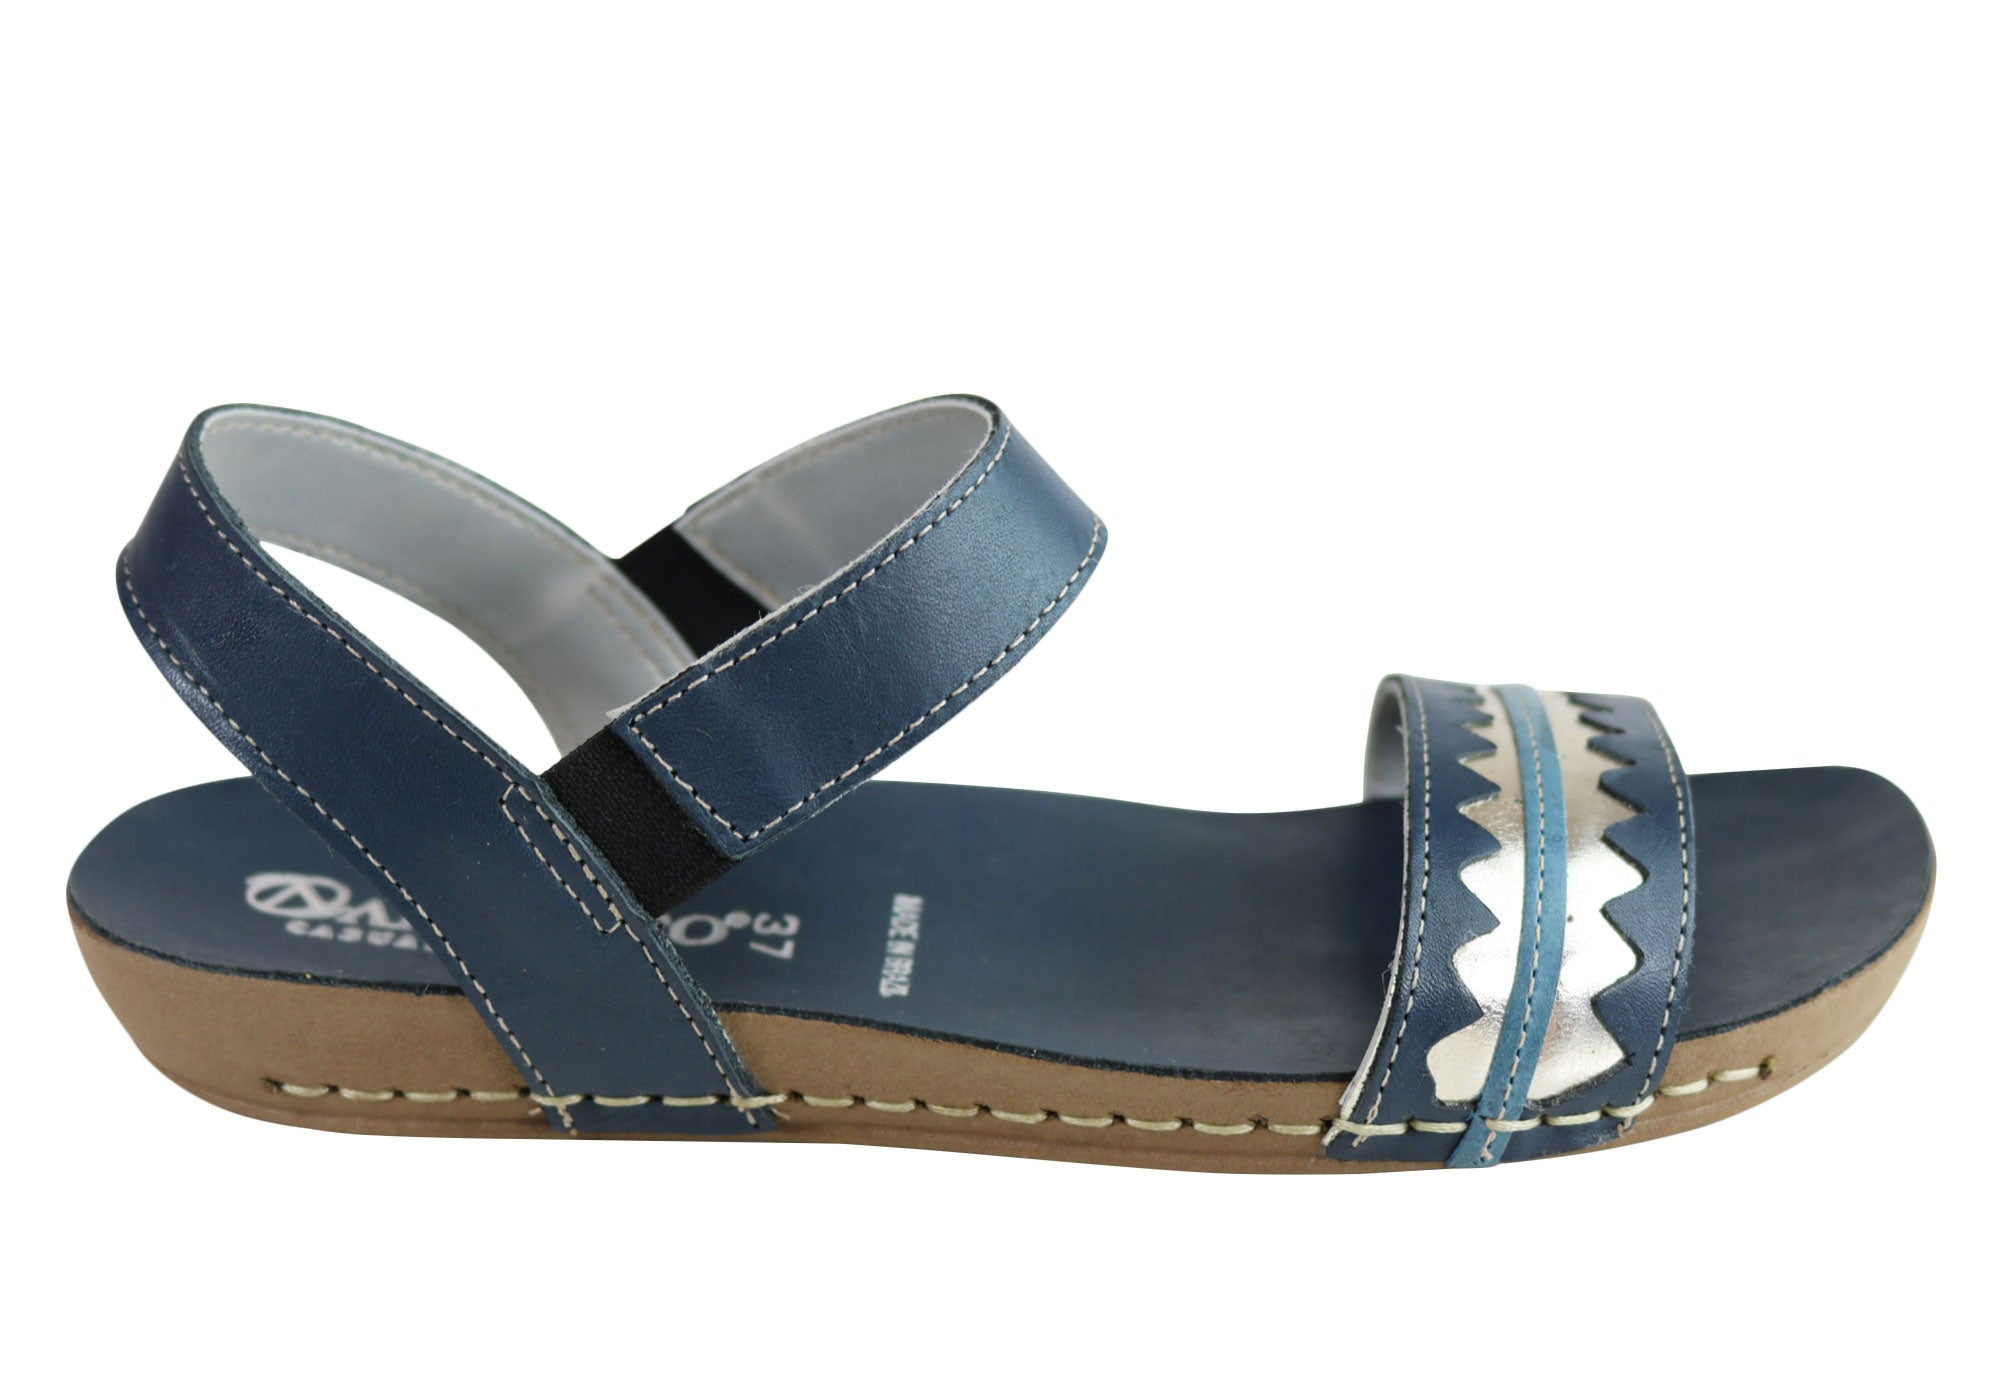 NEW-ANDACCO-TETO-WOMENS-COMFORTABLE-LEATHER-FLAT-SANDALS-MADE-IN-BRAZIL